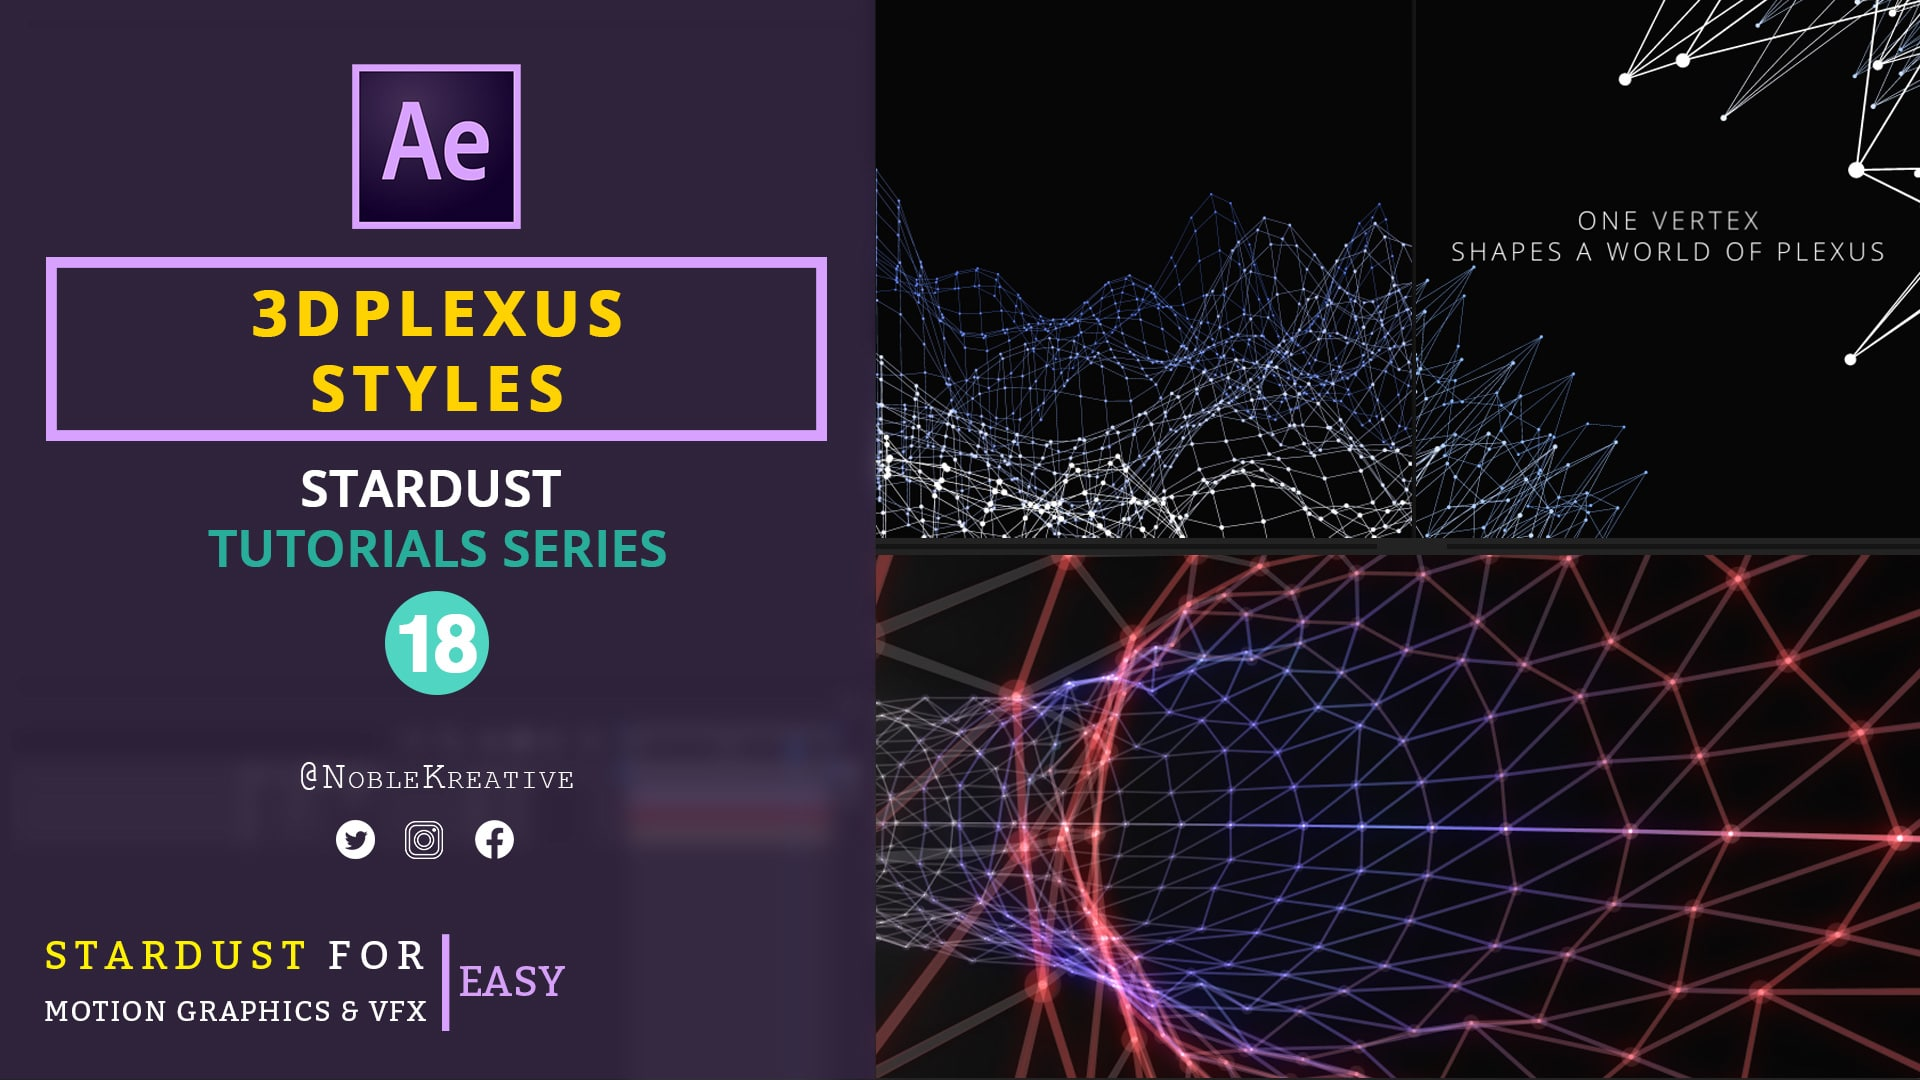 3D Plexus Styles , motion graphics tutorials , after effects tutorials , Plexus Styles , 3D Plexus Styles Effects